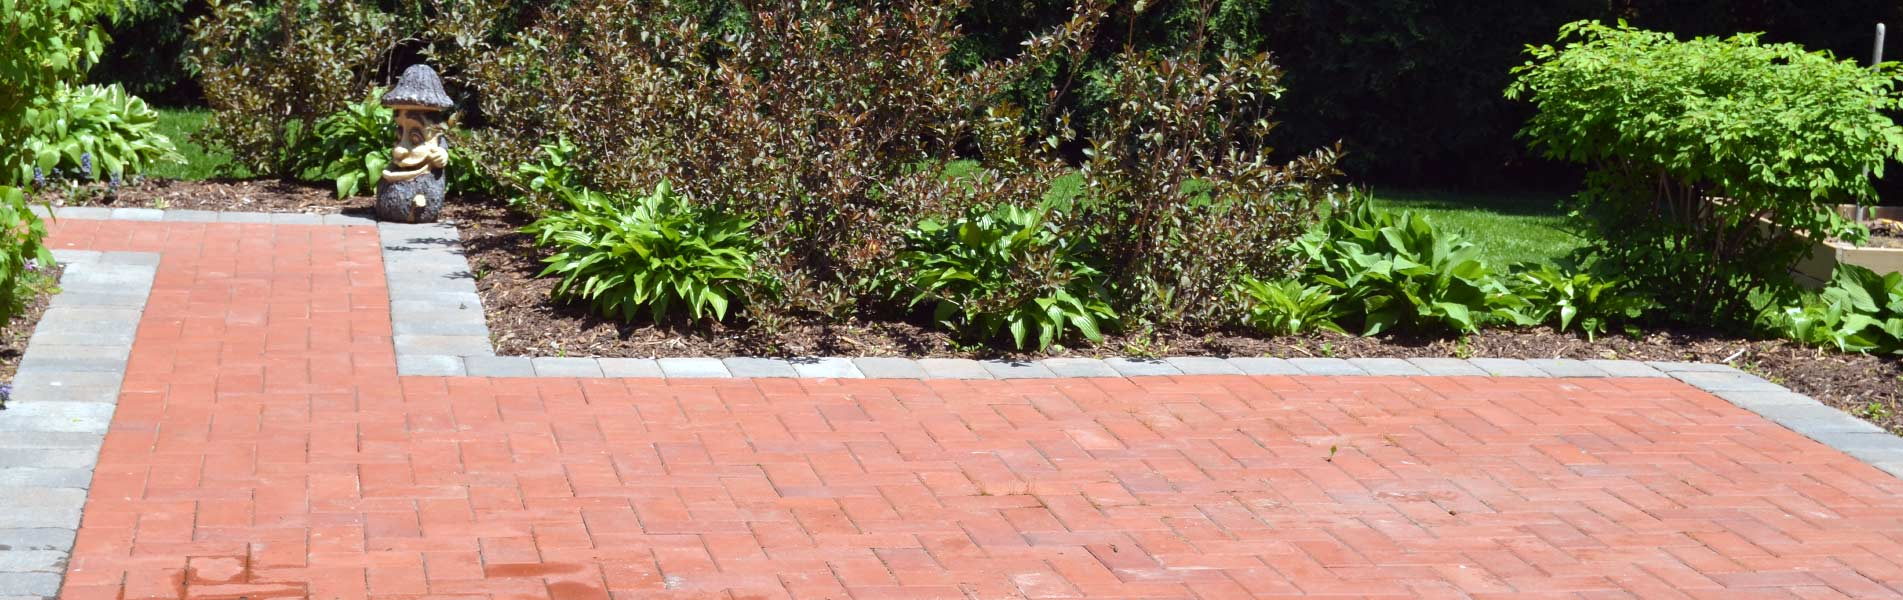 Patio Installation Services by B&C Pavers and Landscaping Inc.